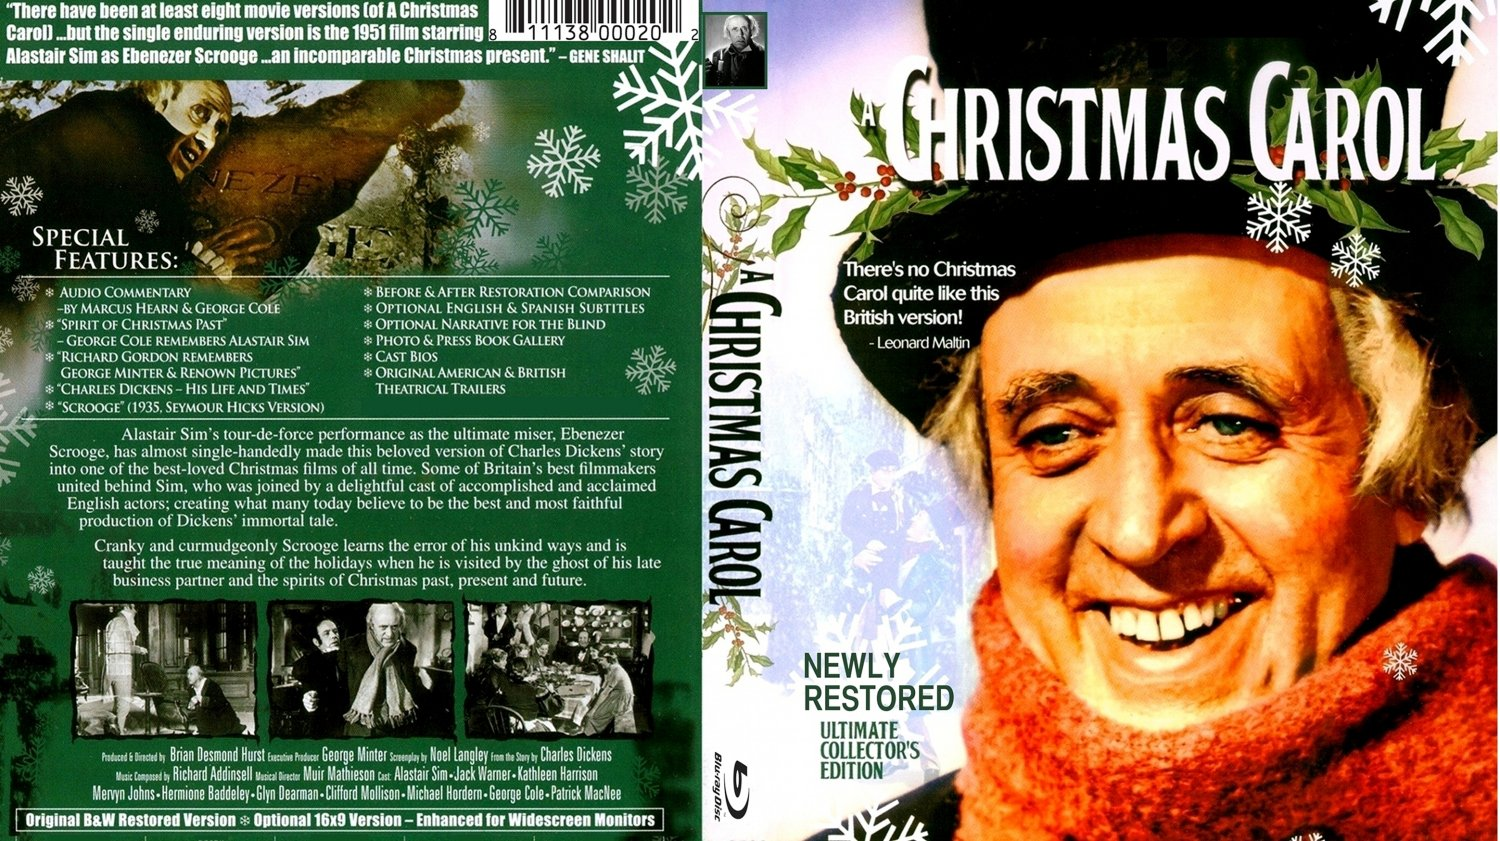 A Christmas Carol 1951.Movie Review A Christmas Carol 1951 Festival Reviews